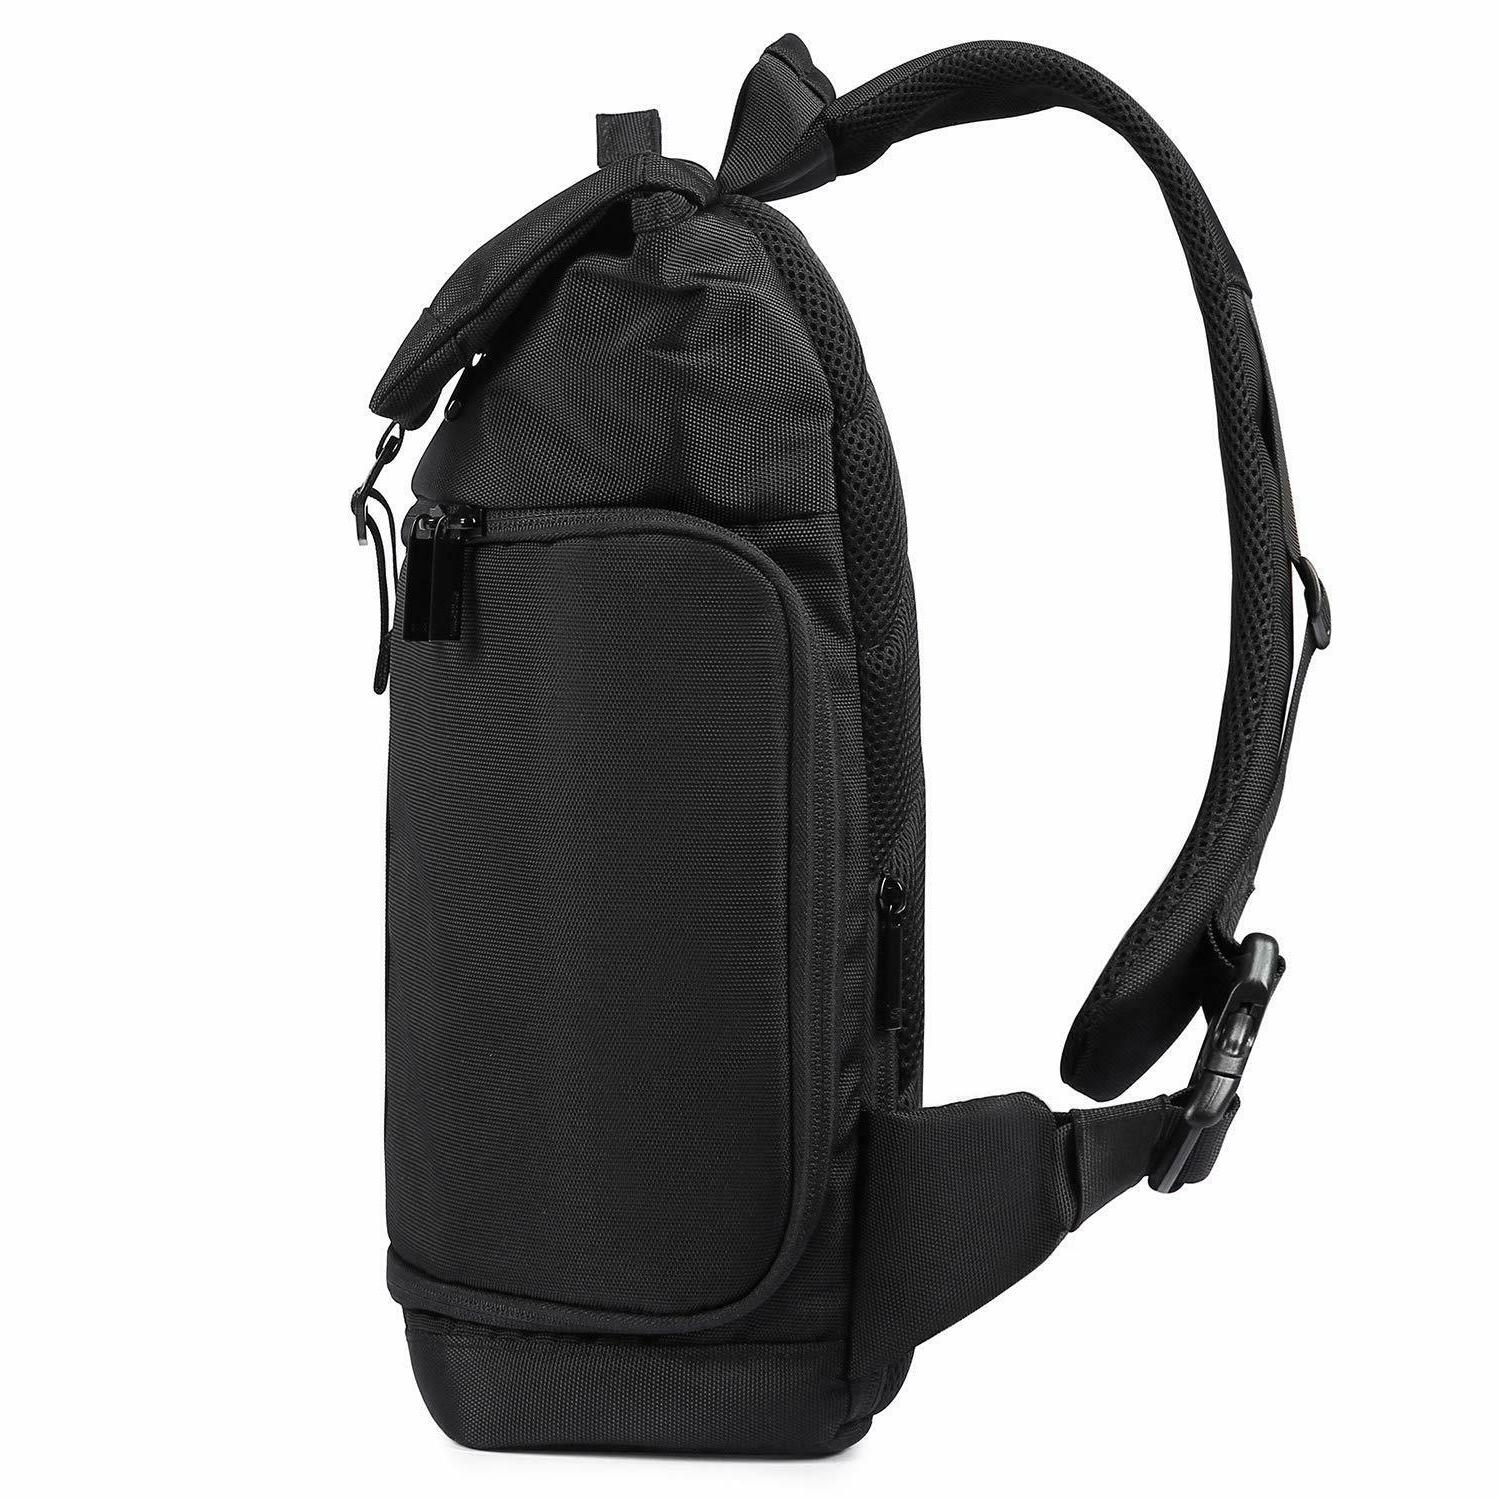 BAGSMART Bag Sling 1 Camera,1